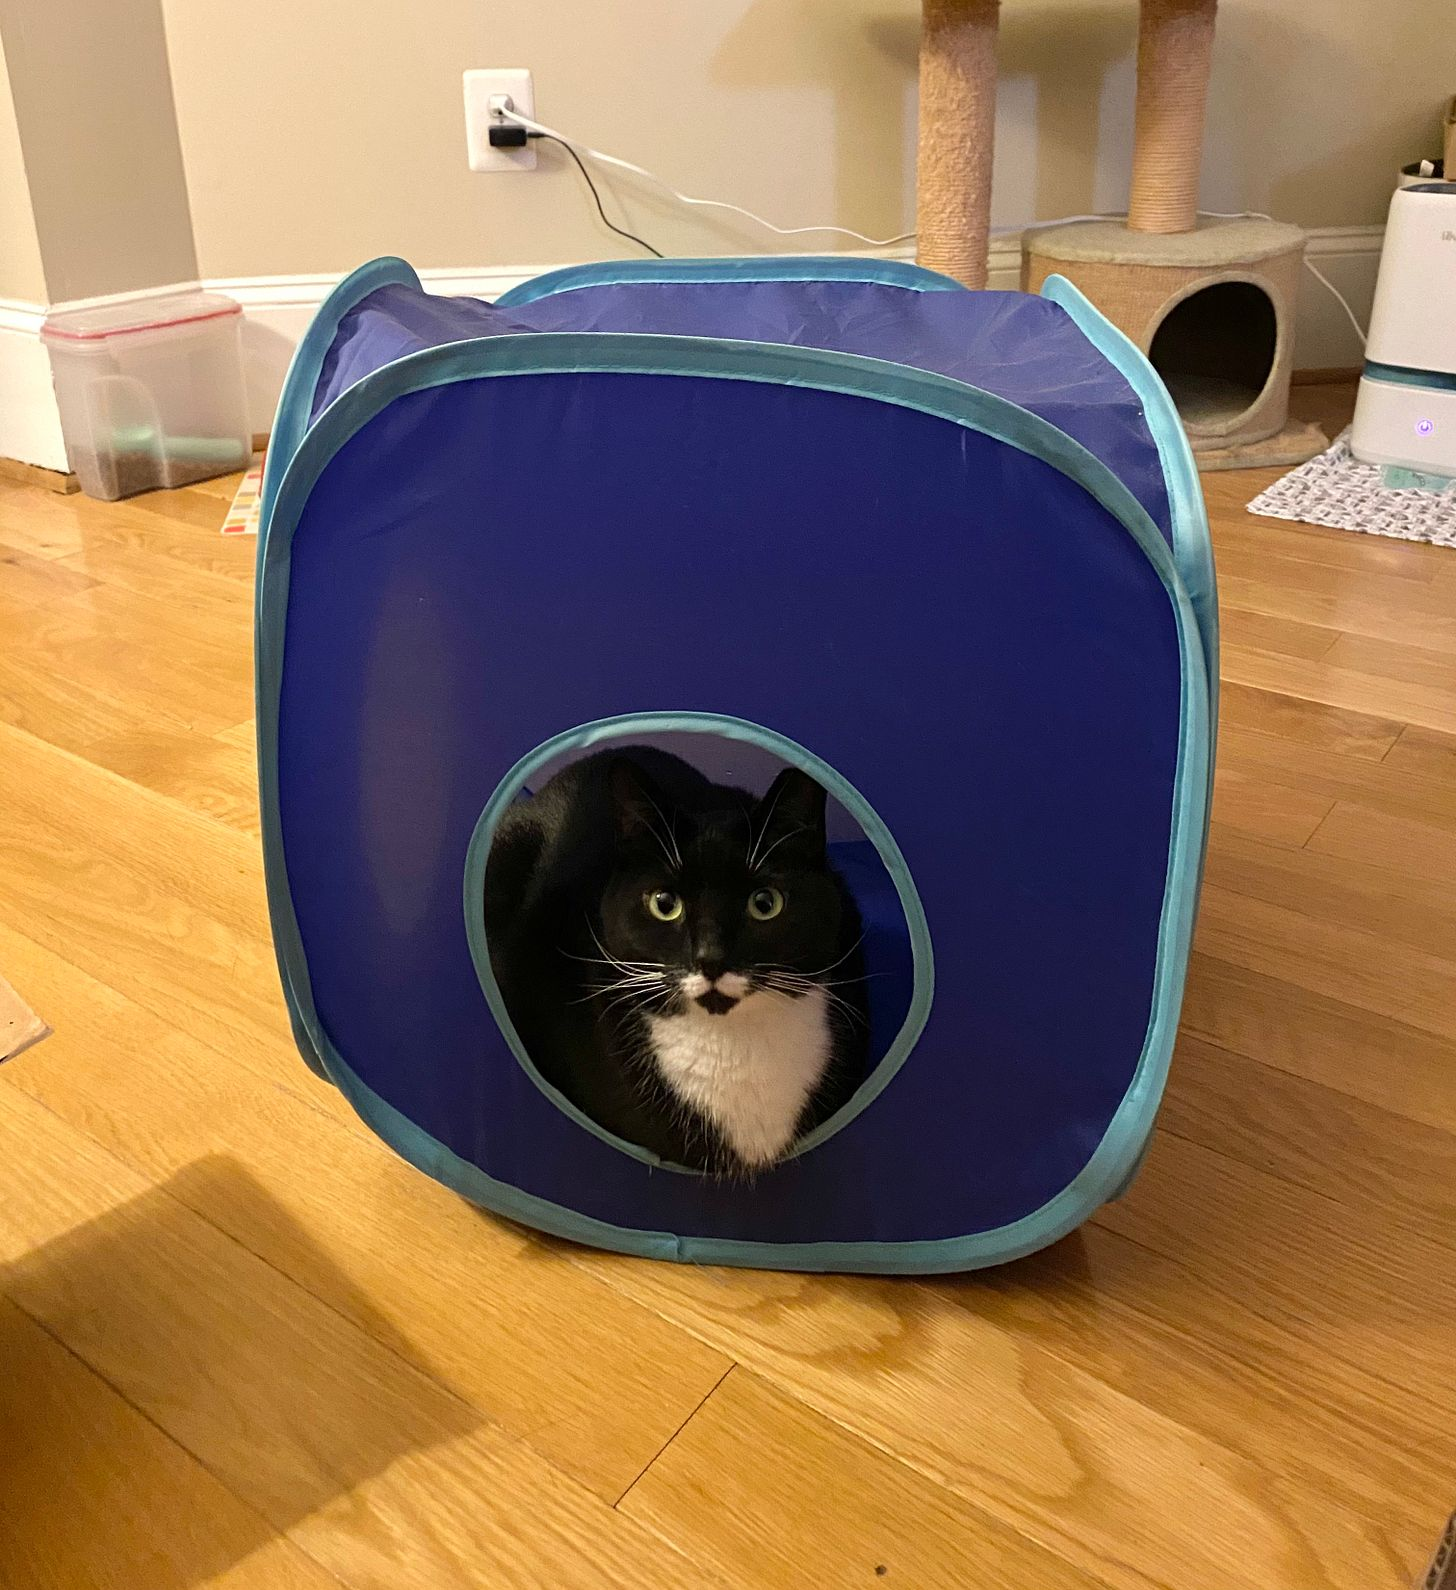 A black and white cat with a white mustache marking sits in a cube-shaped cat toy, staring at the camera.